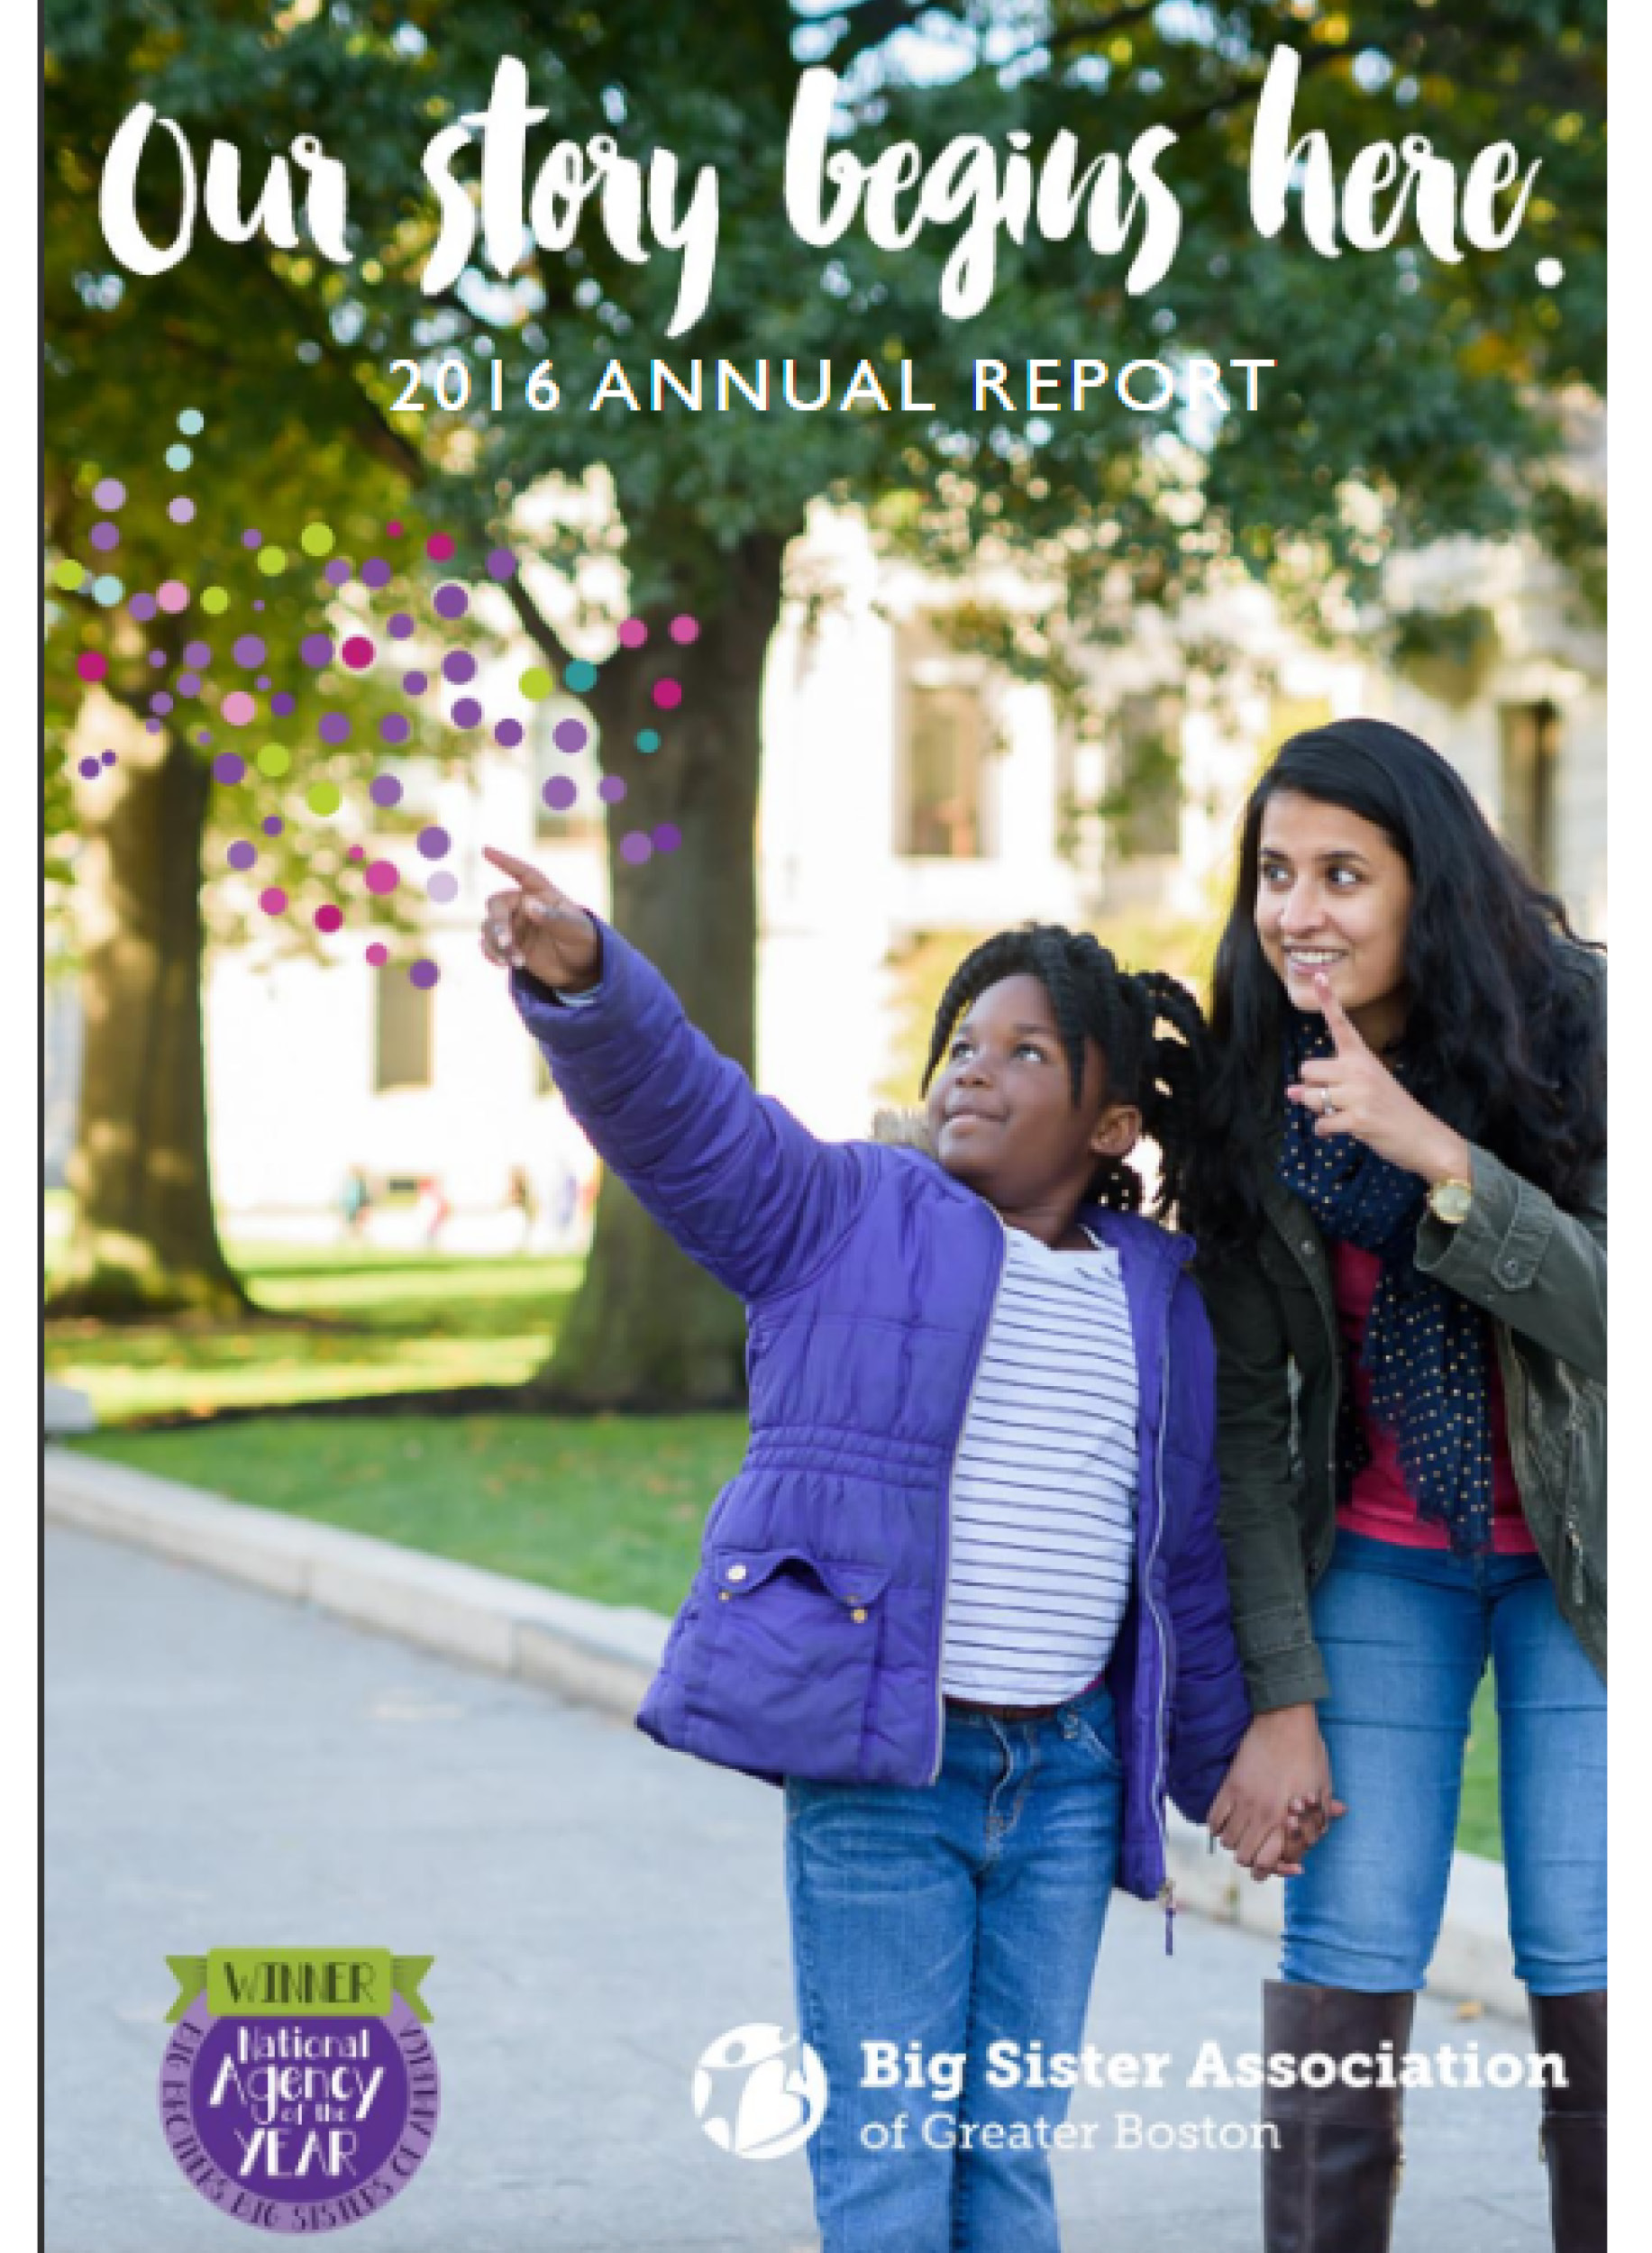 cover of the 2016 big sister annual report showing two girls pointing